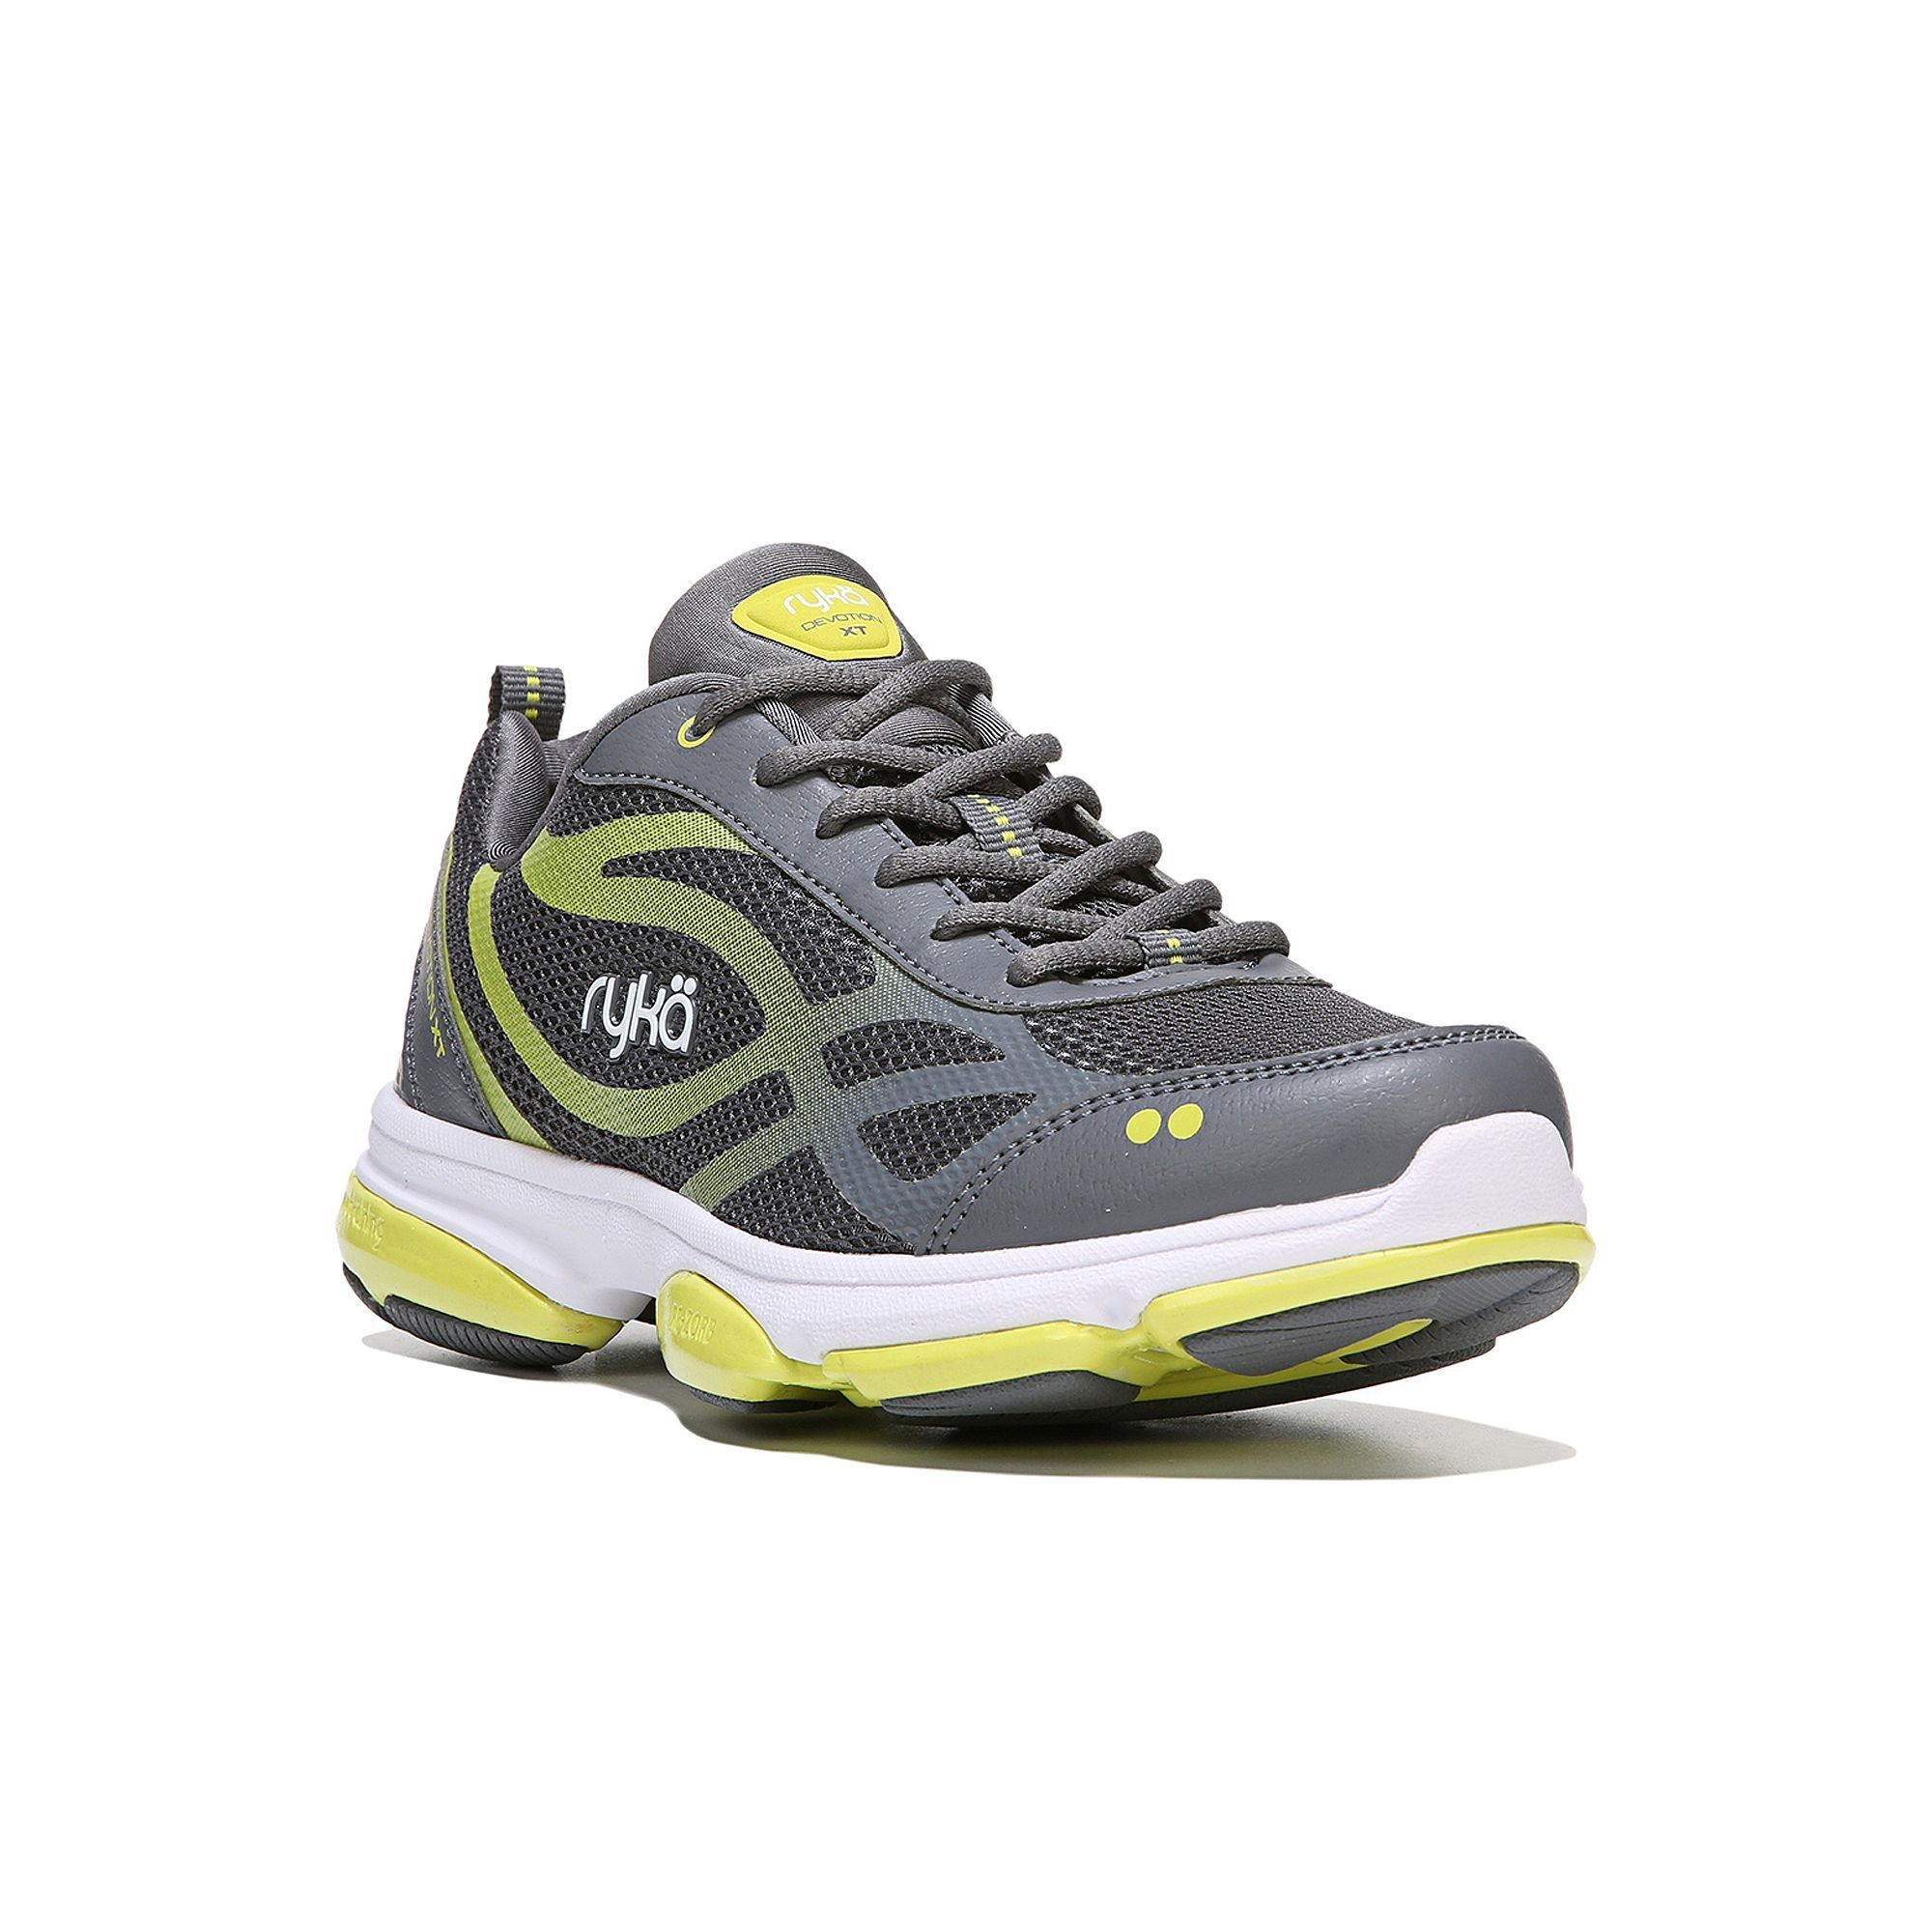 Ryka Devotion XT Women's Cross ... Training Shoes